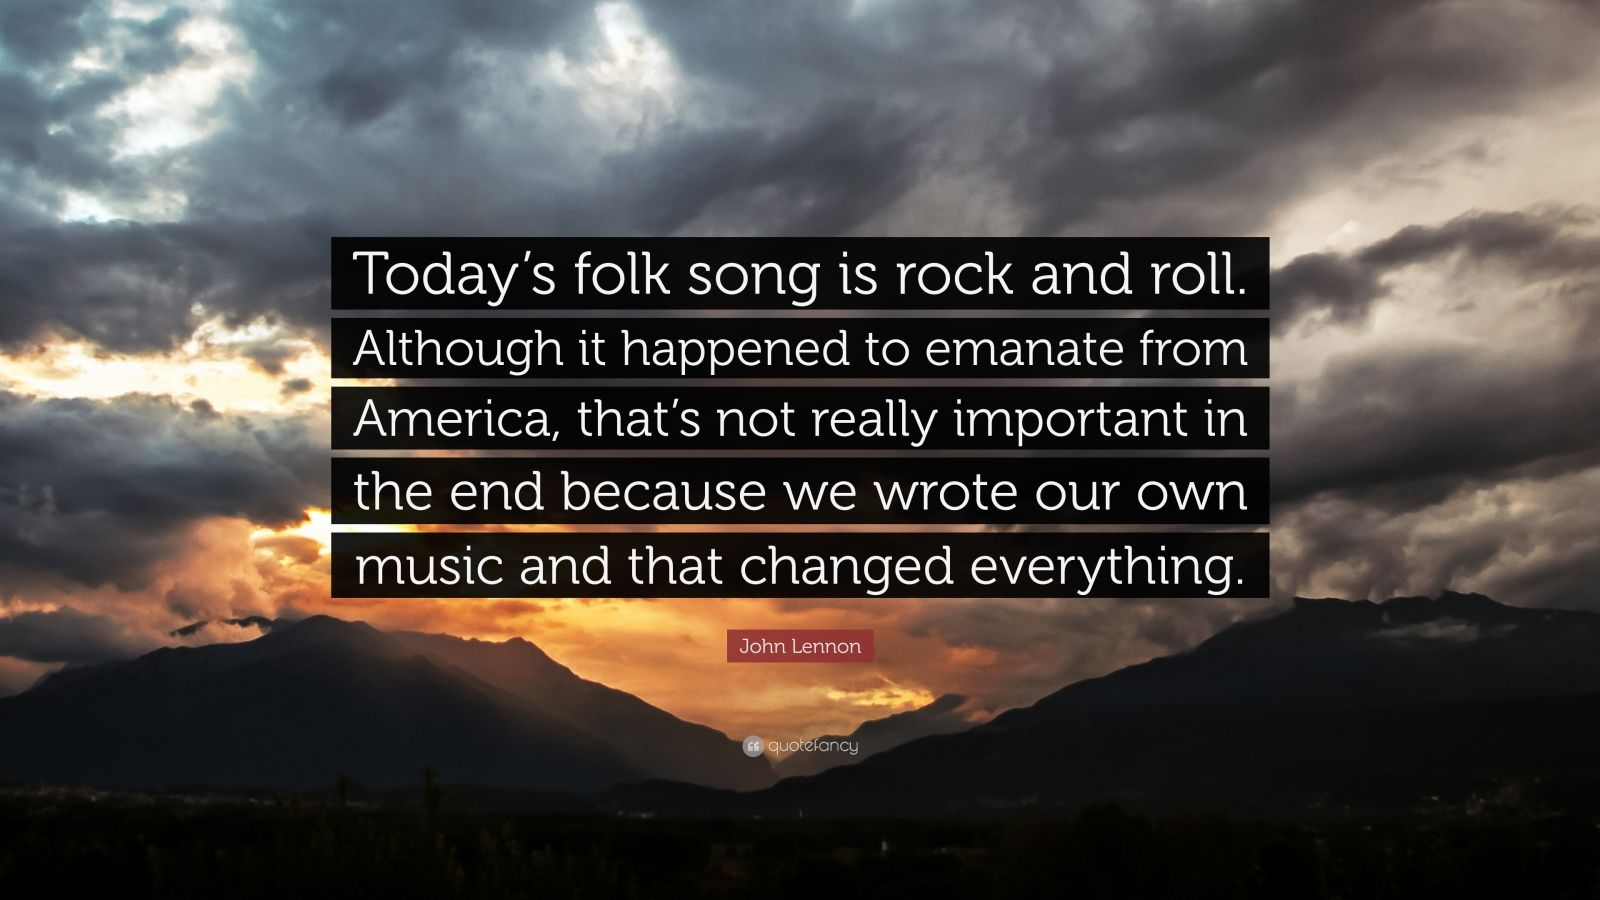 """John Lennon Quote: """"Today's folk song is rock and roll. Although it happened to emanate from America, that's not really important in the end because we wrote our own music and that changed everything."""""""